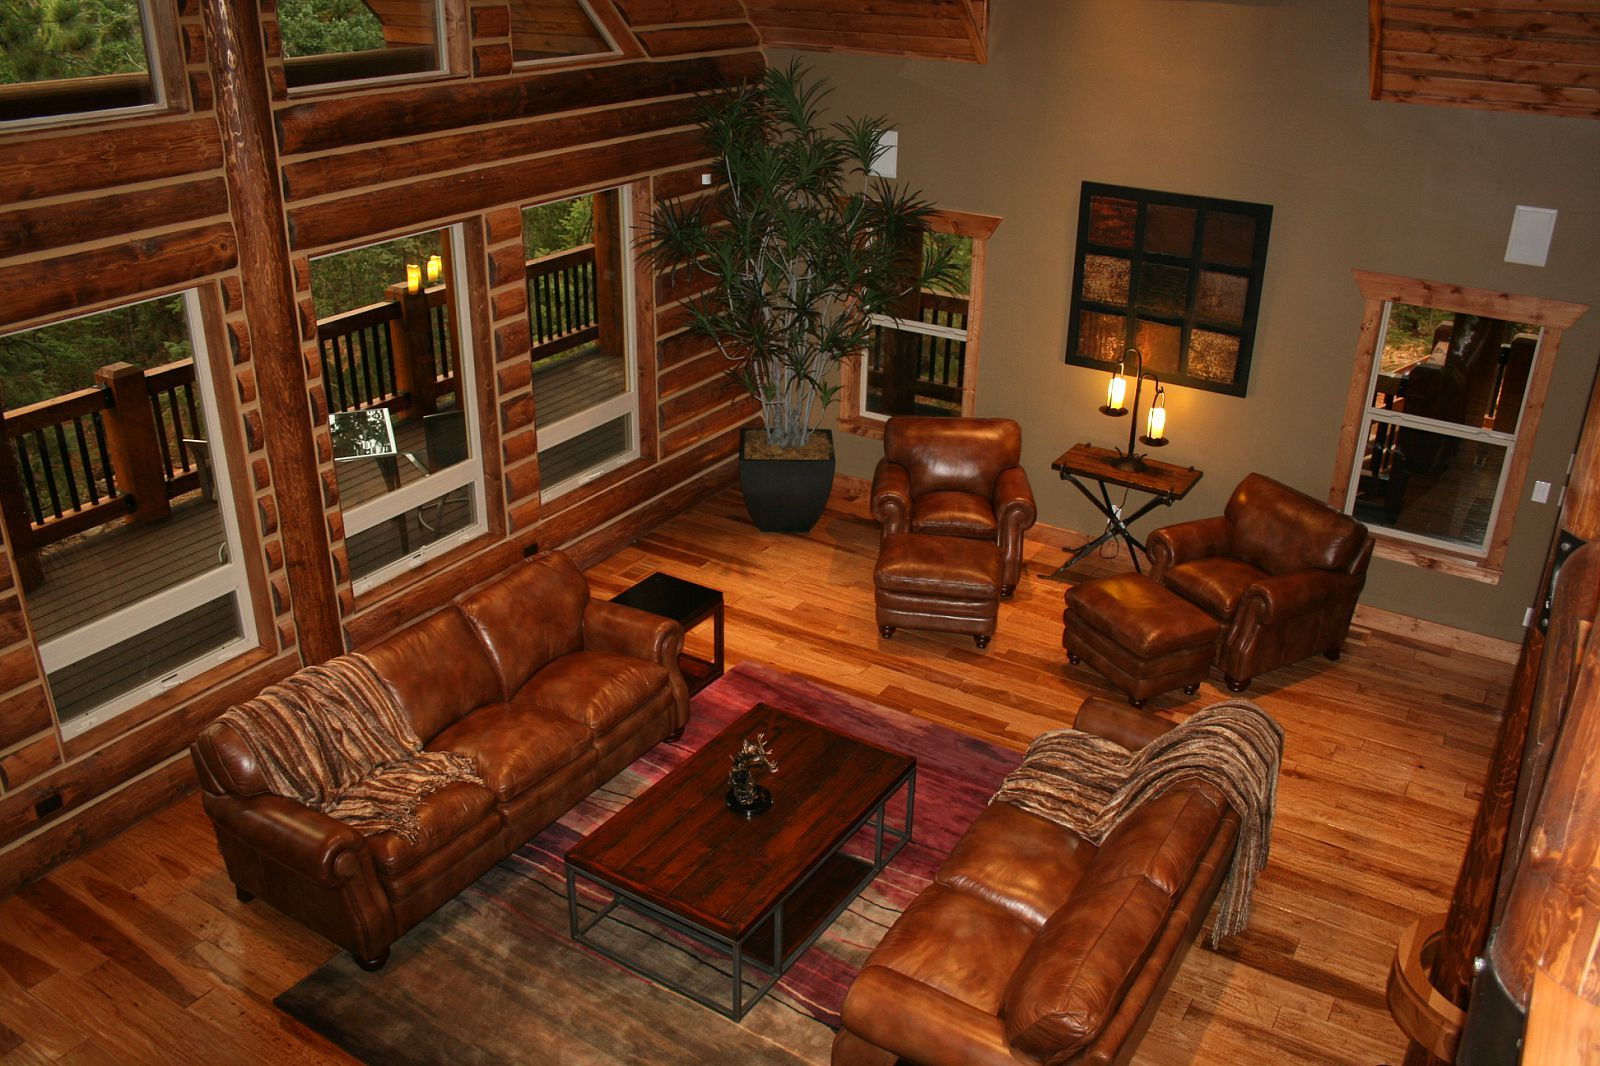 Log Cabin Interior Design, Wooden Cabin Decorating Ideas: Log Home Interior  Design With Brown Leather Sofa ~ Ranario Part 28